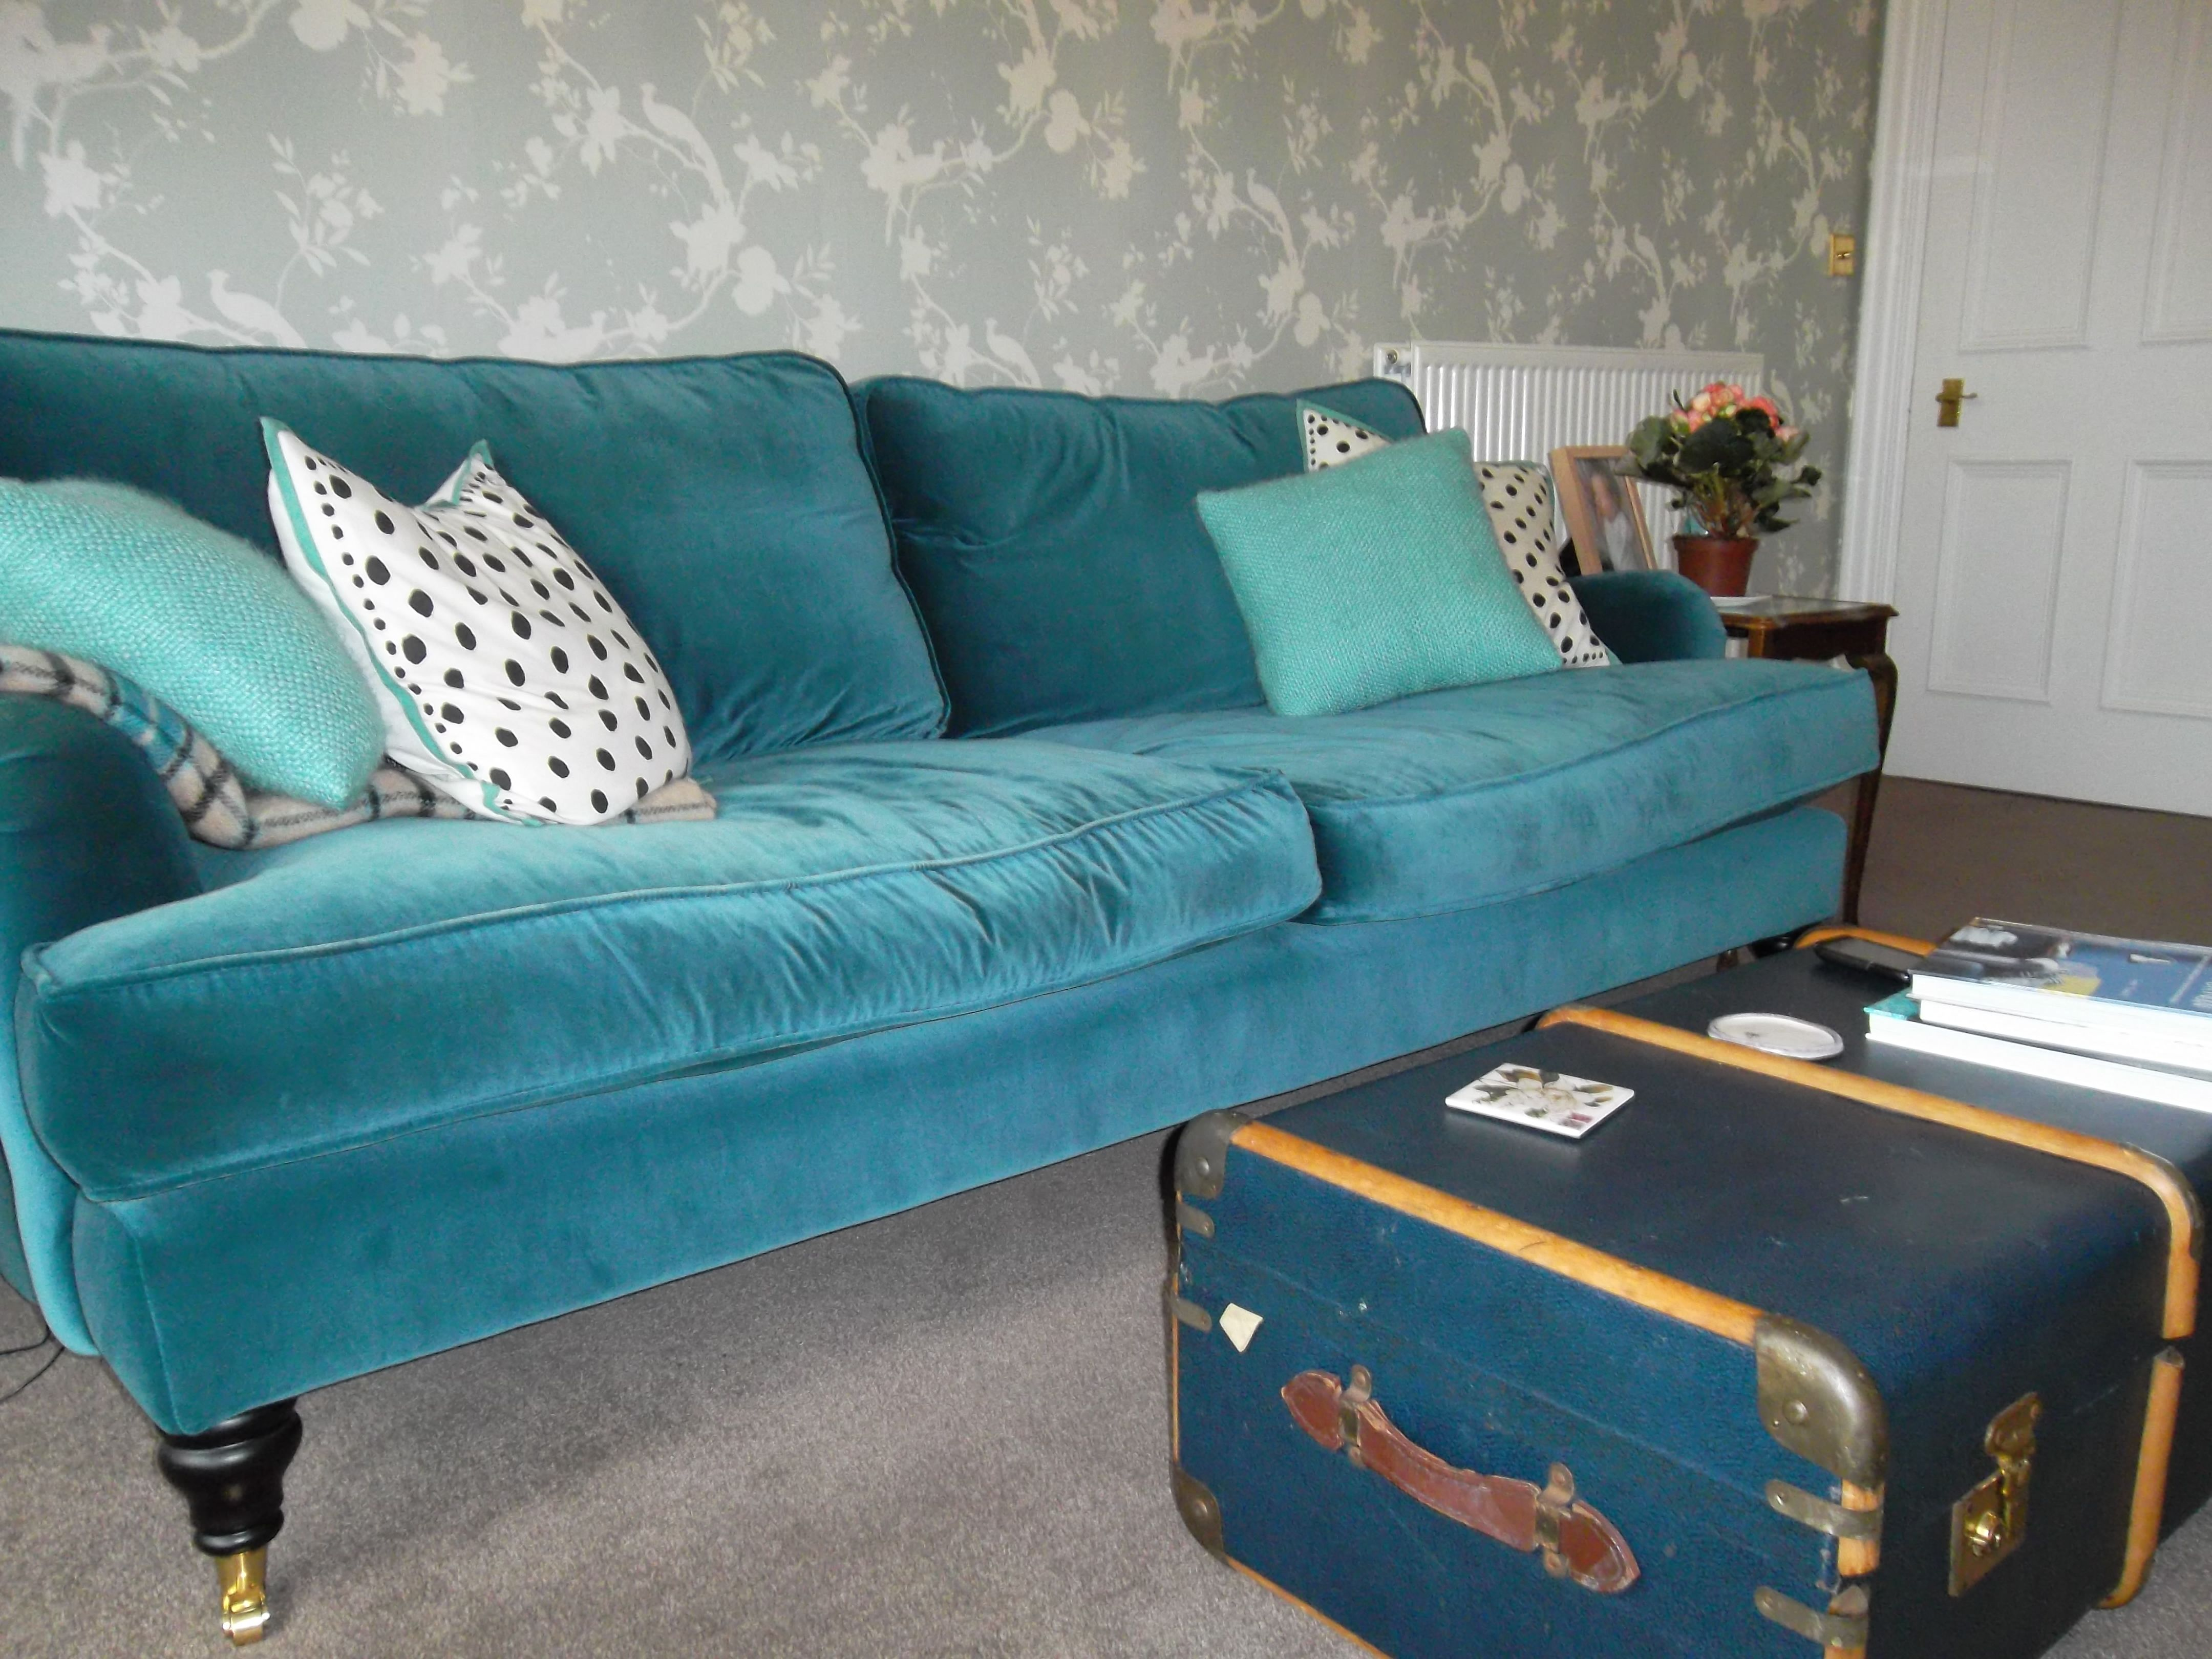 Bluebell 3 Seater Velvet Sofa In Dark Turquoise From With Vintage Trunk Coffee Table Spot Print Cushions By Conran At Mands